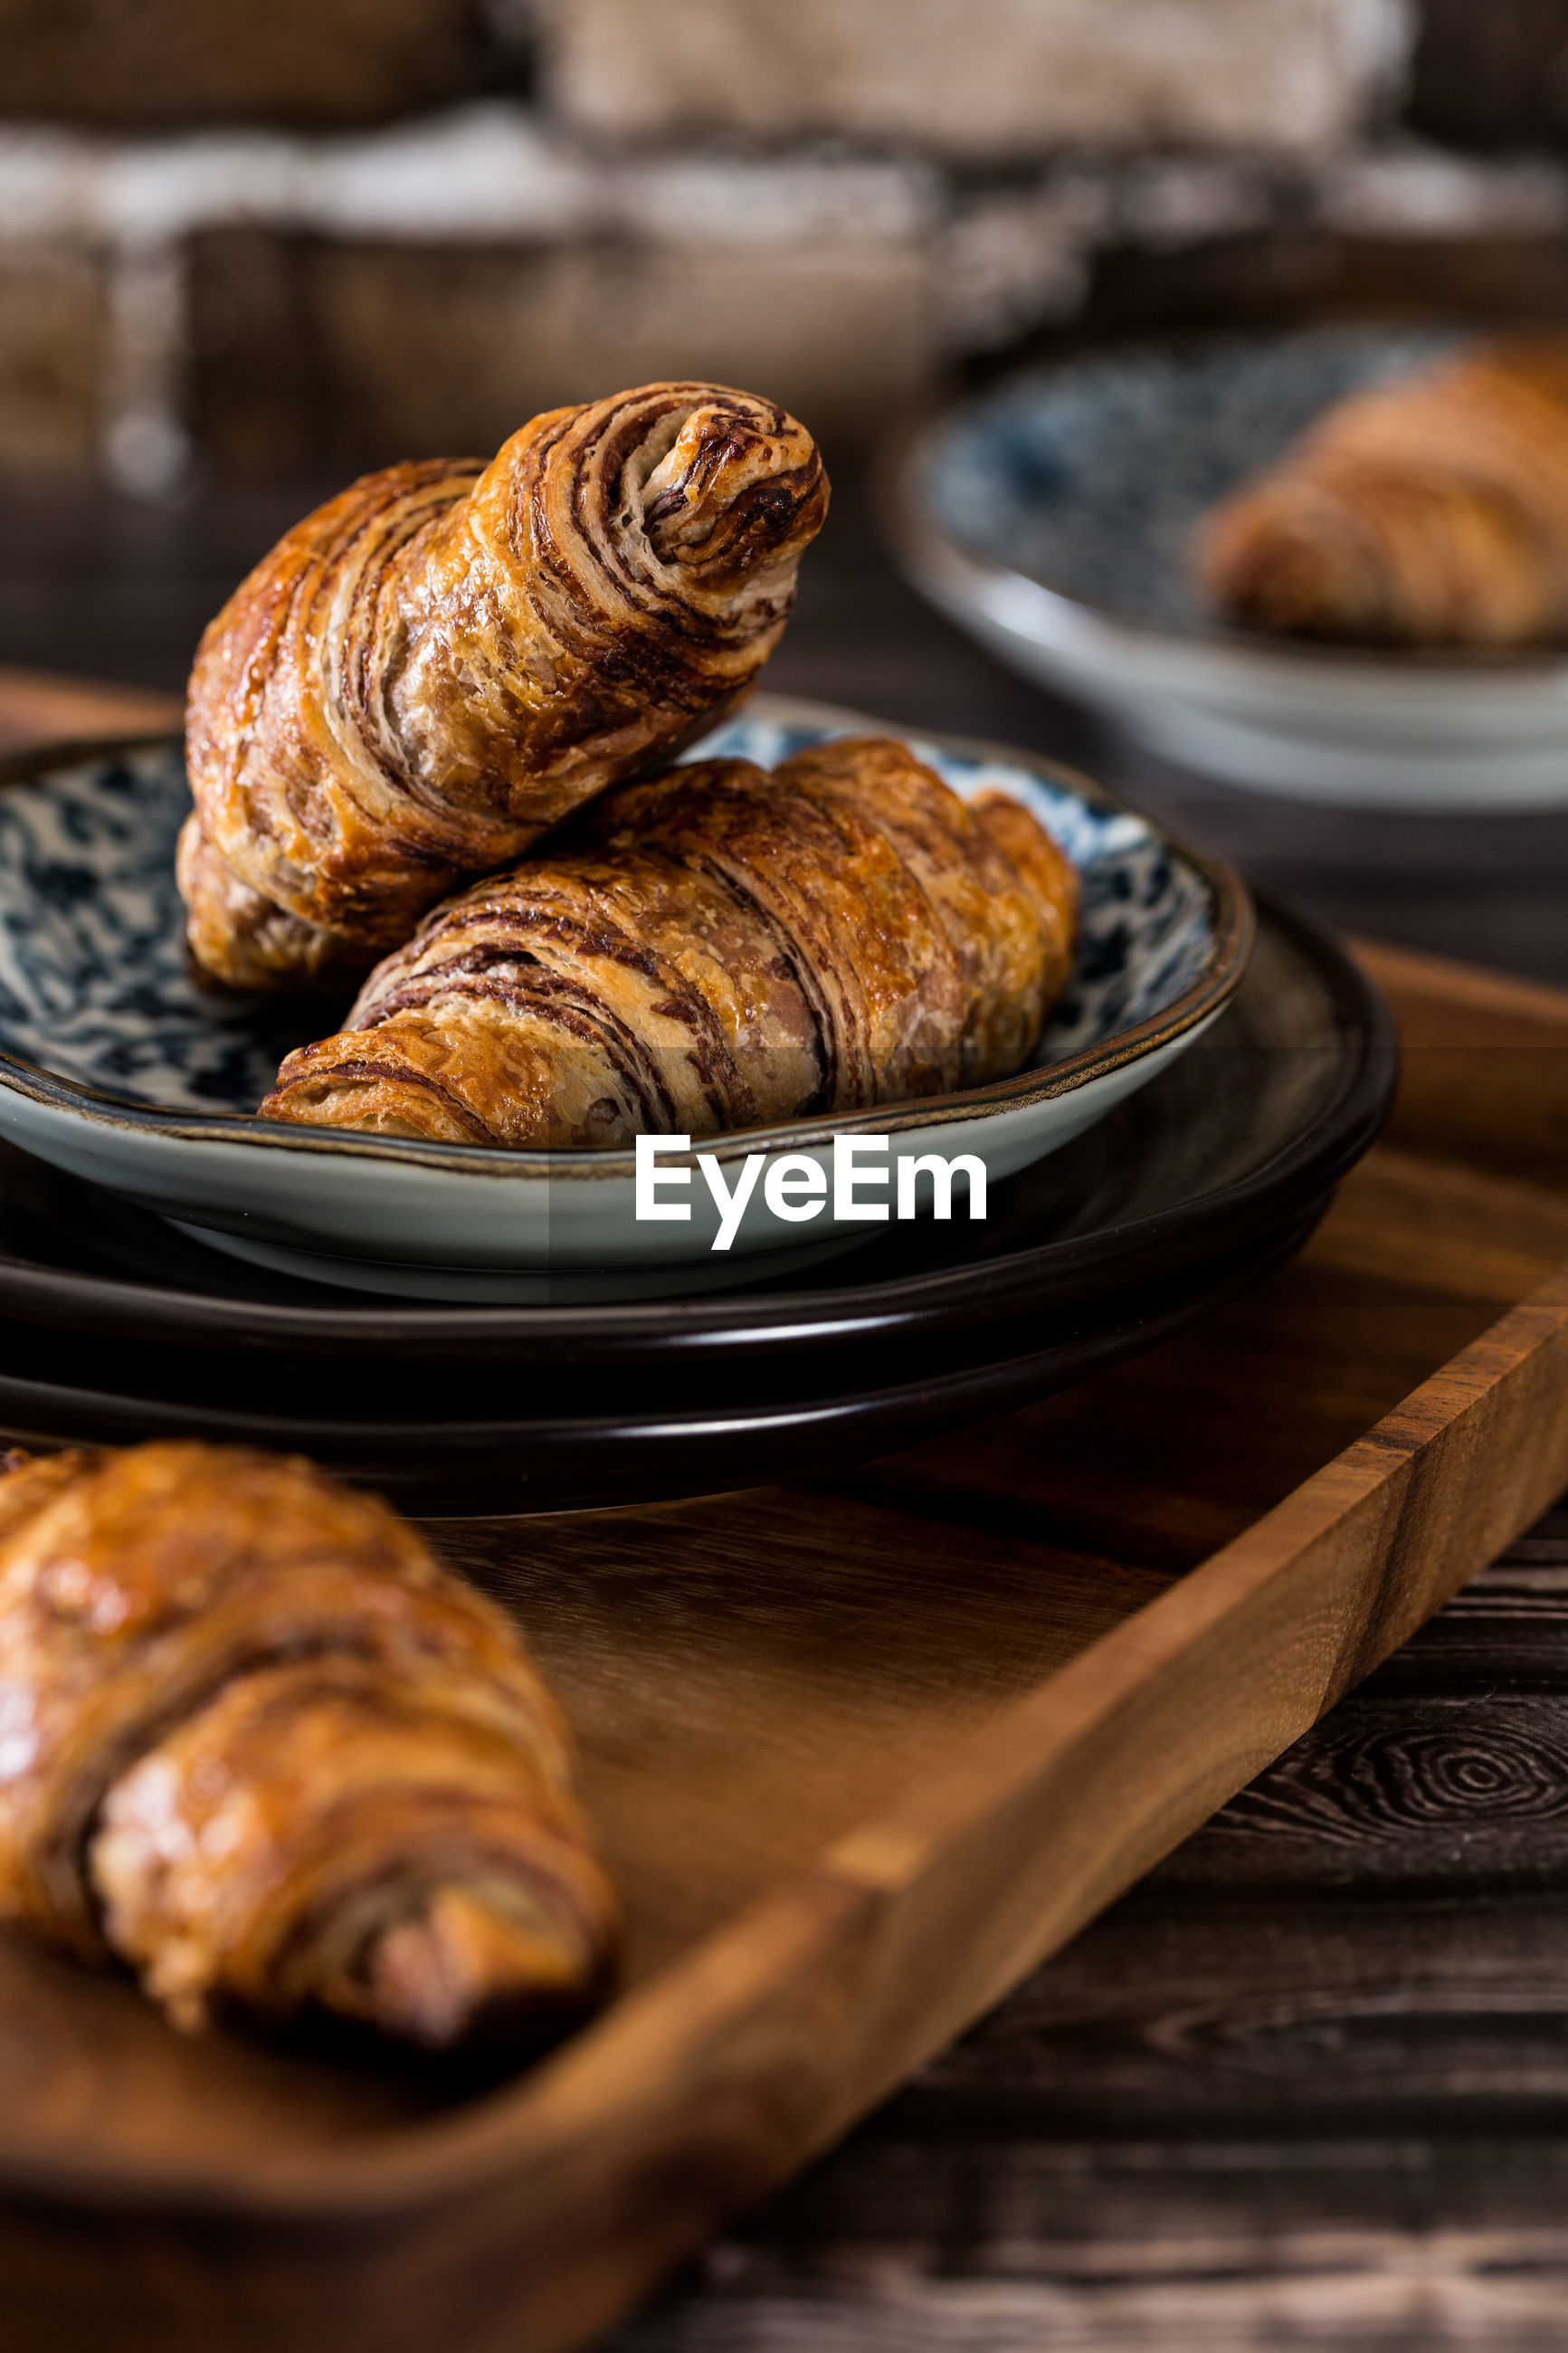 Close-up of chocolate croissant in plate on table